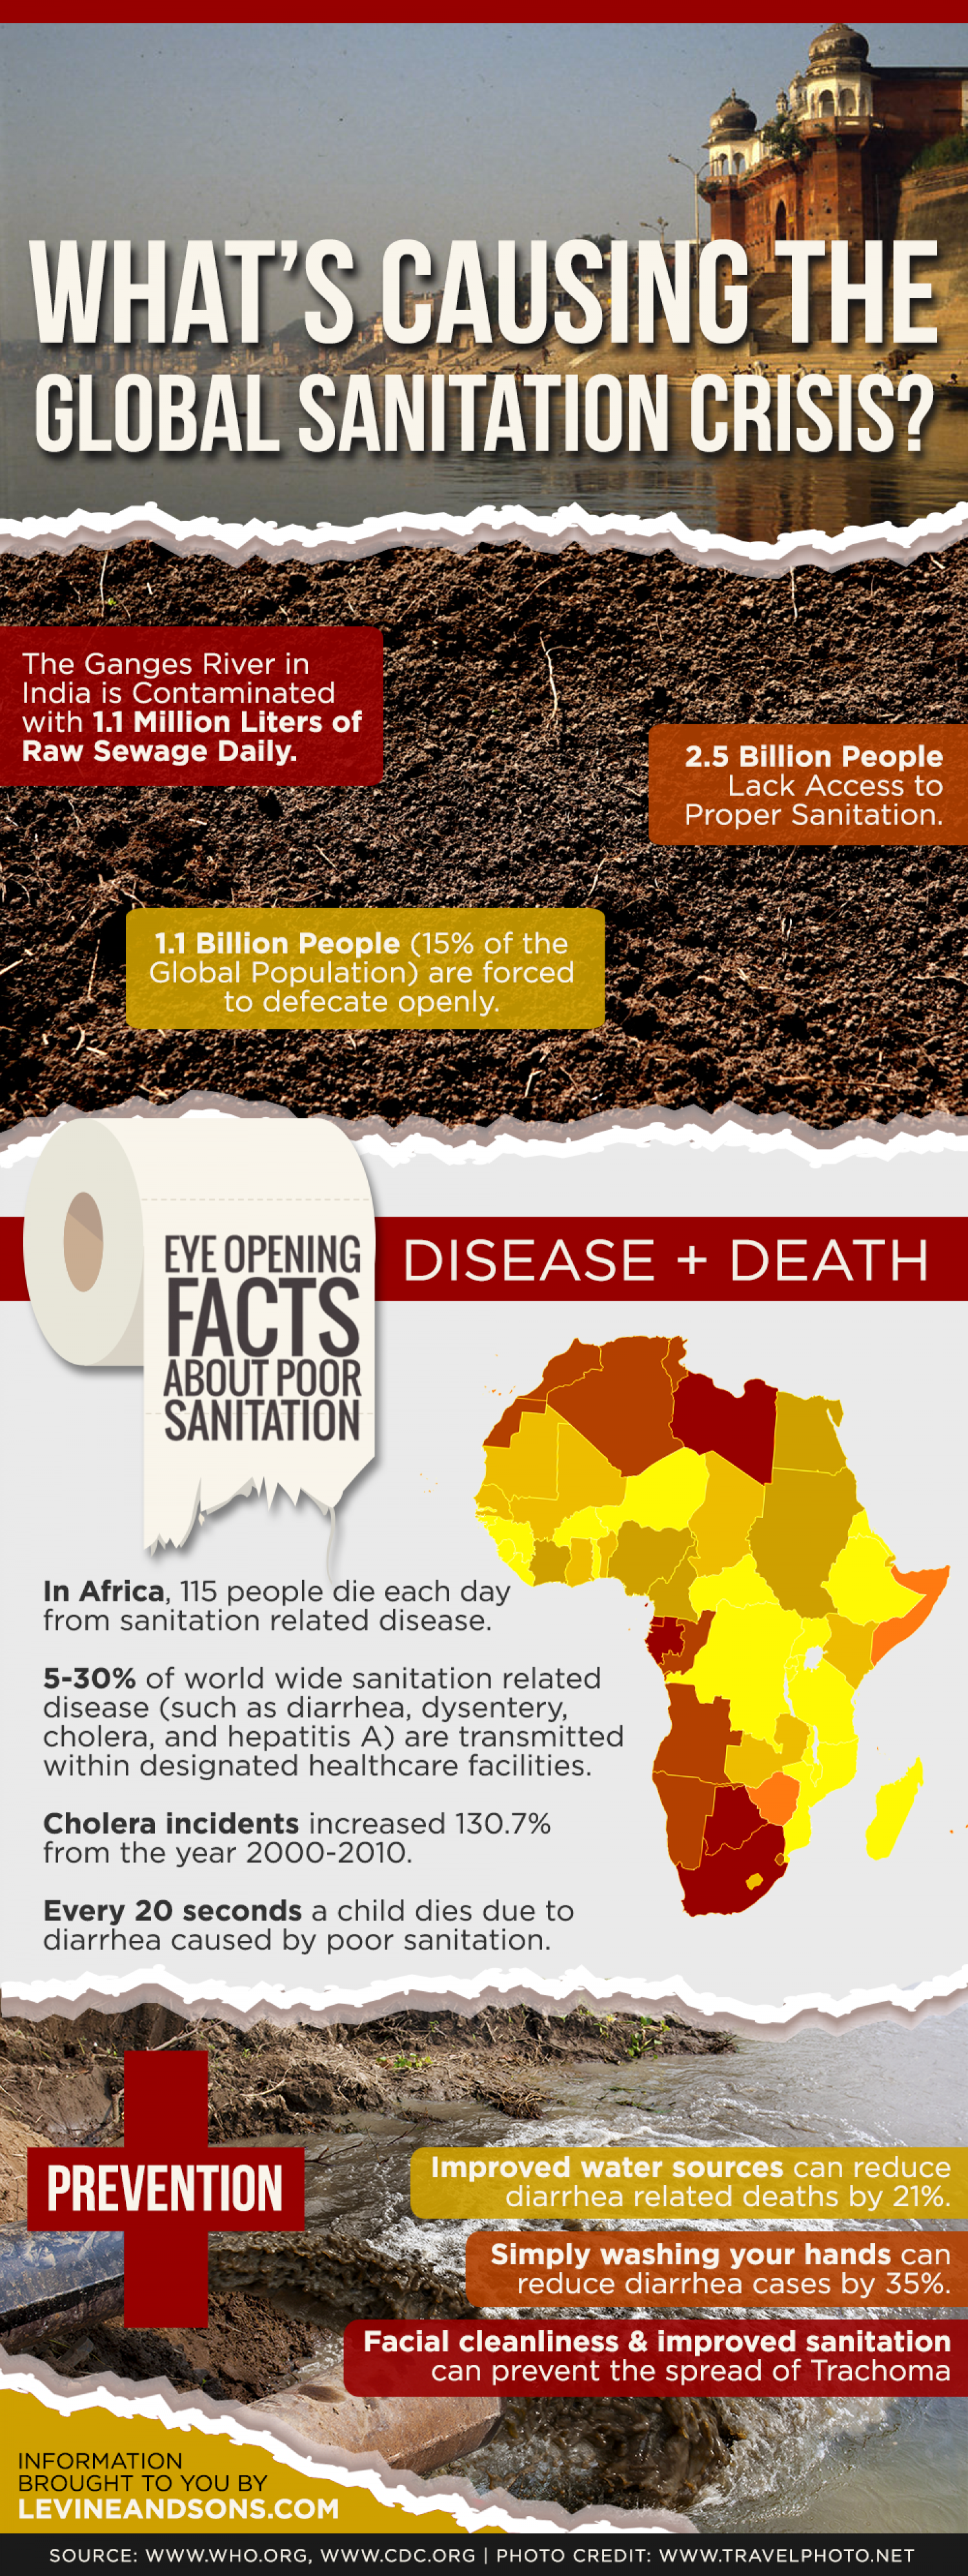 What's Causing the Global Sanitation Crisis? Infographic